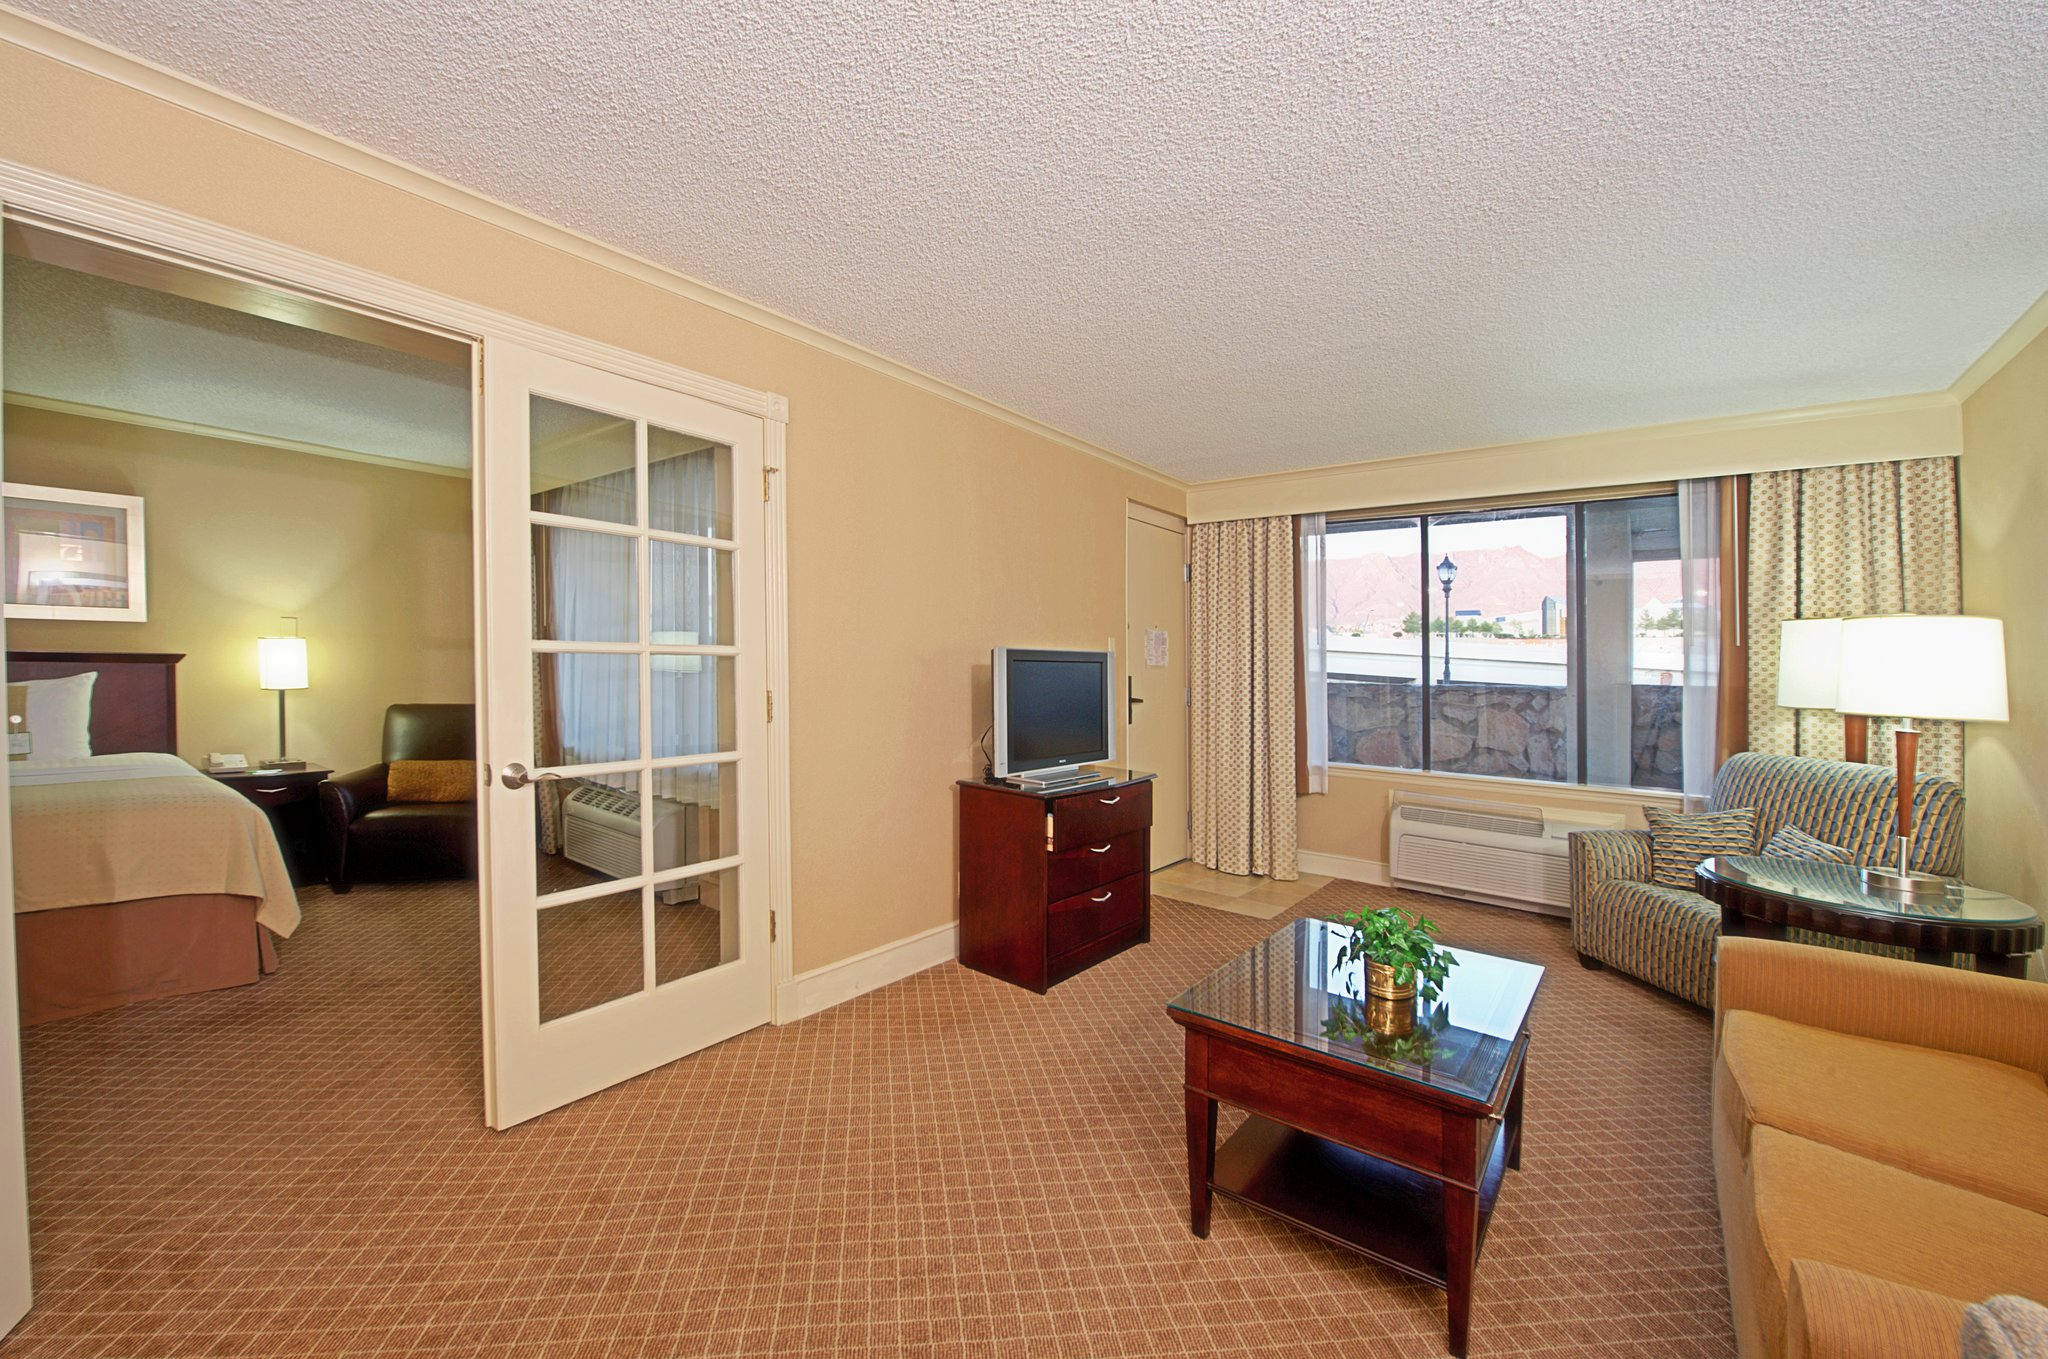 Country Inn & Suites By Carlson, El Paso Sunland Park, TX